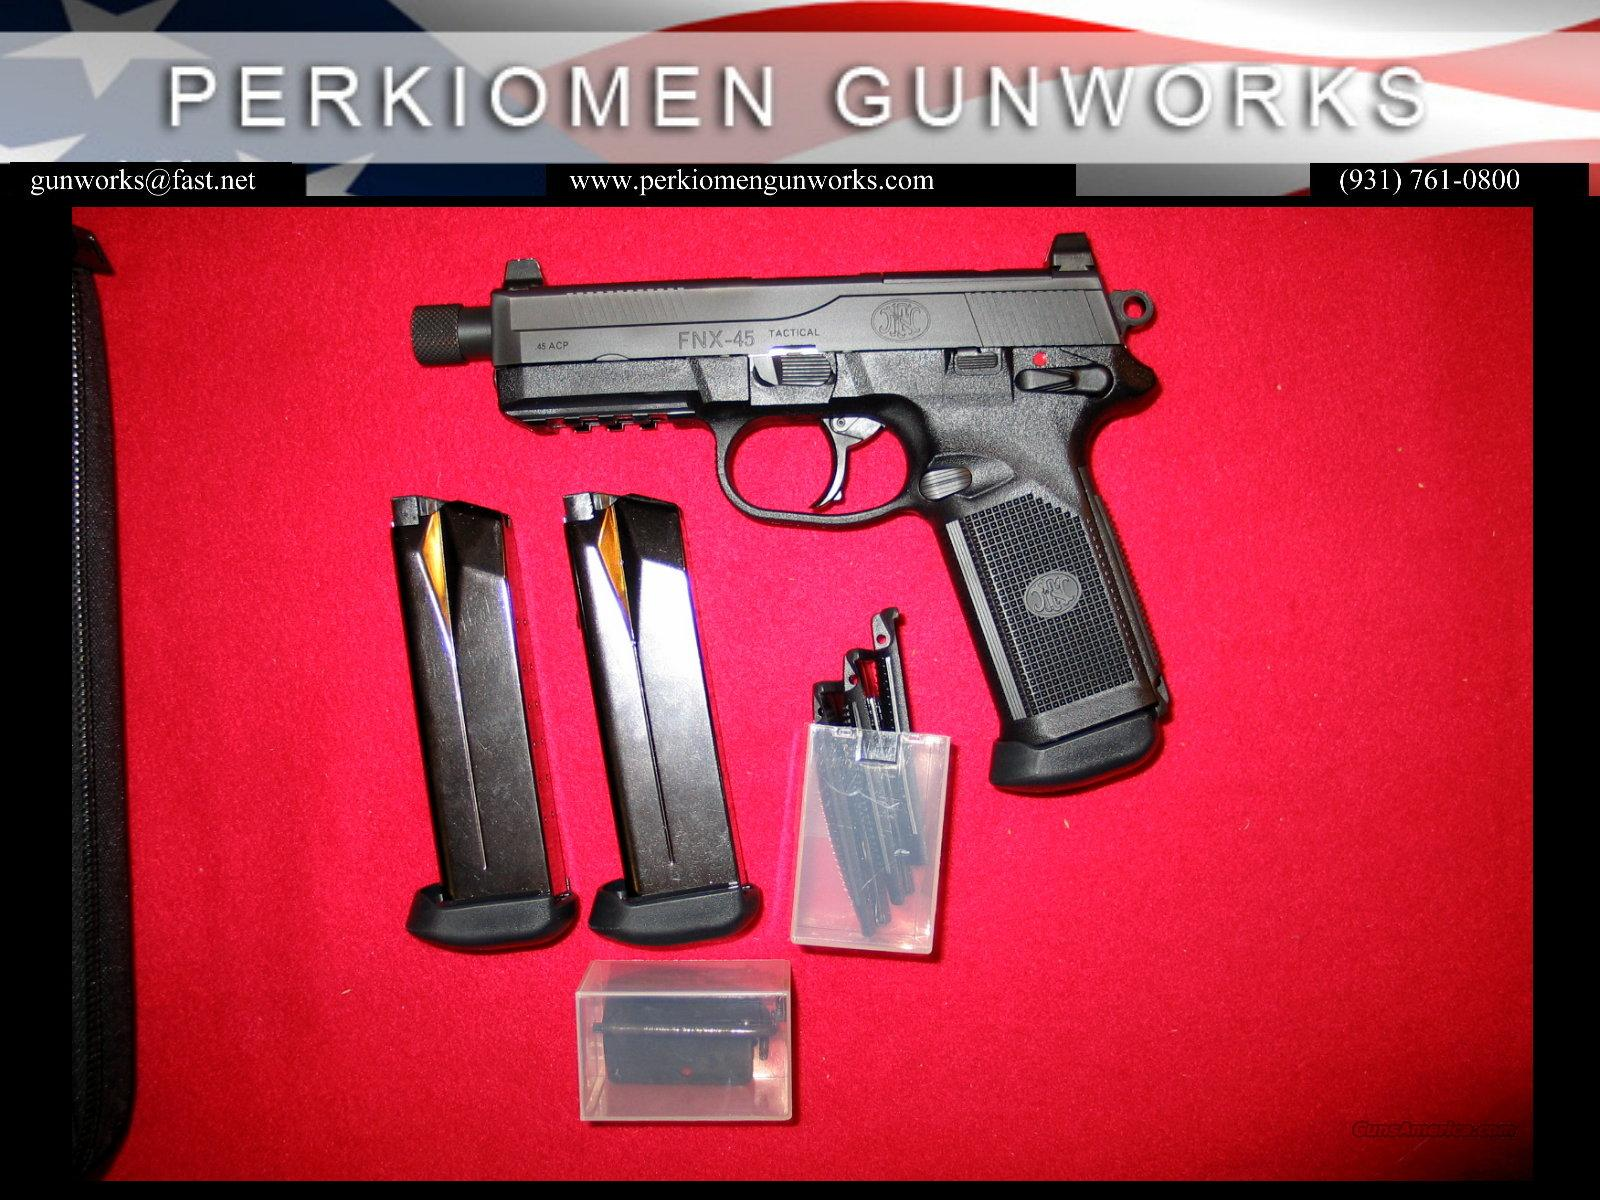 FNX-45 Tactical / Black, 45acp, New w/case  Guns > Pistols > FNH - Fabrique Nationale (FN) Pistols > FNP